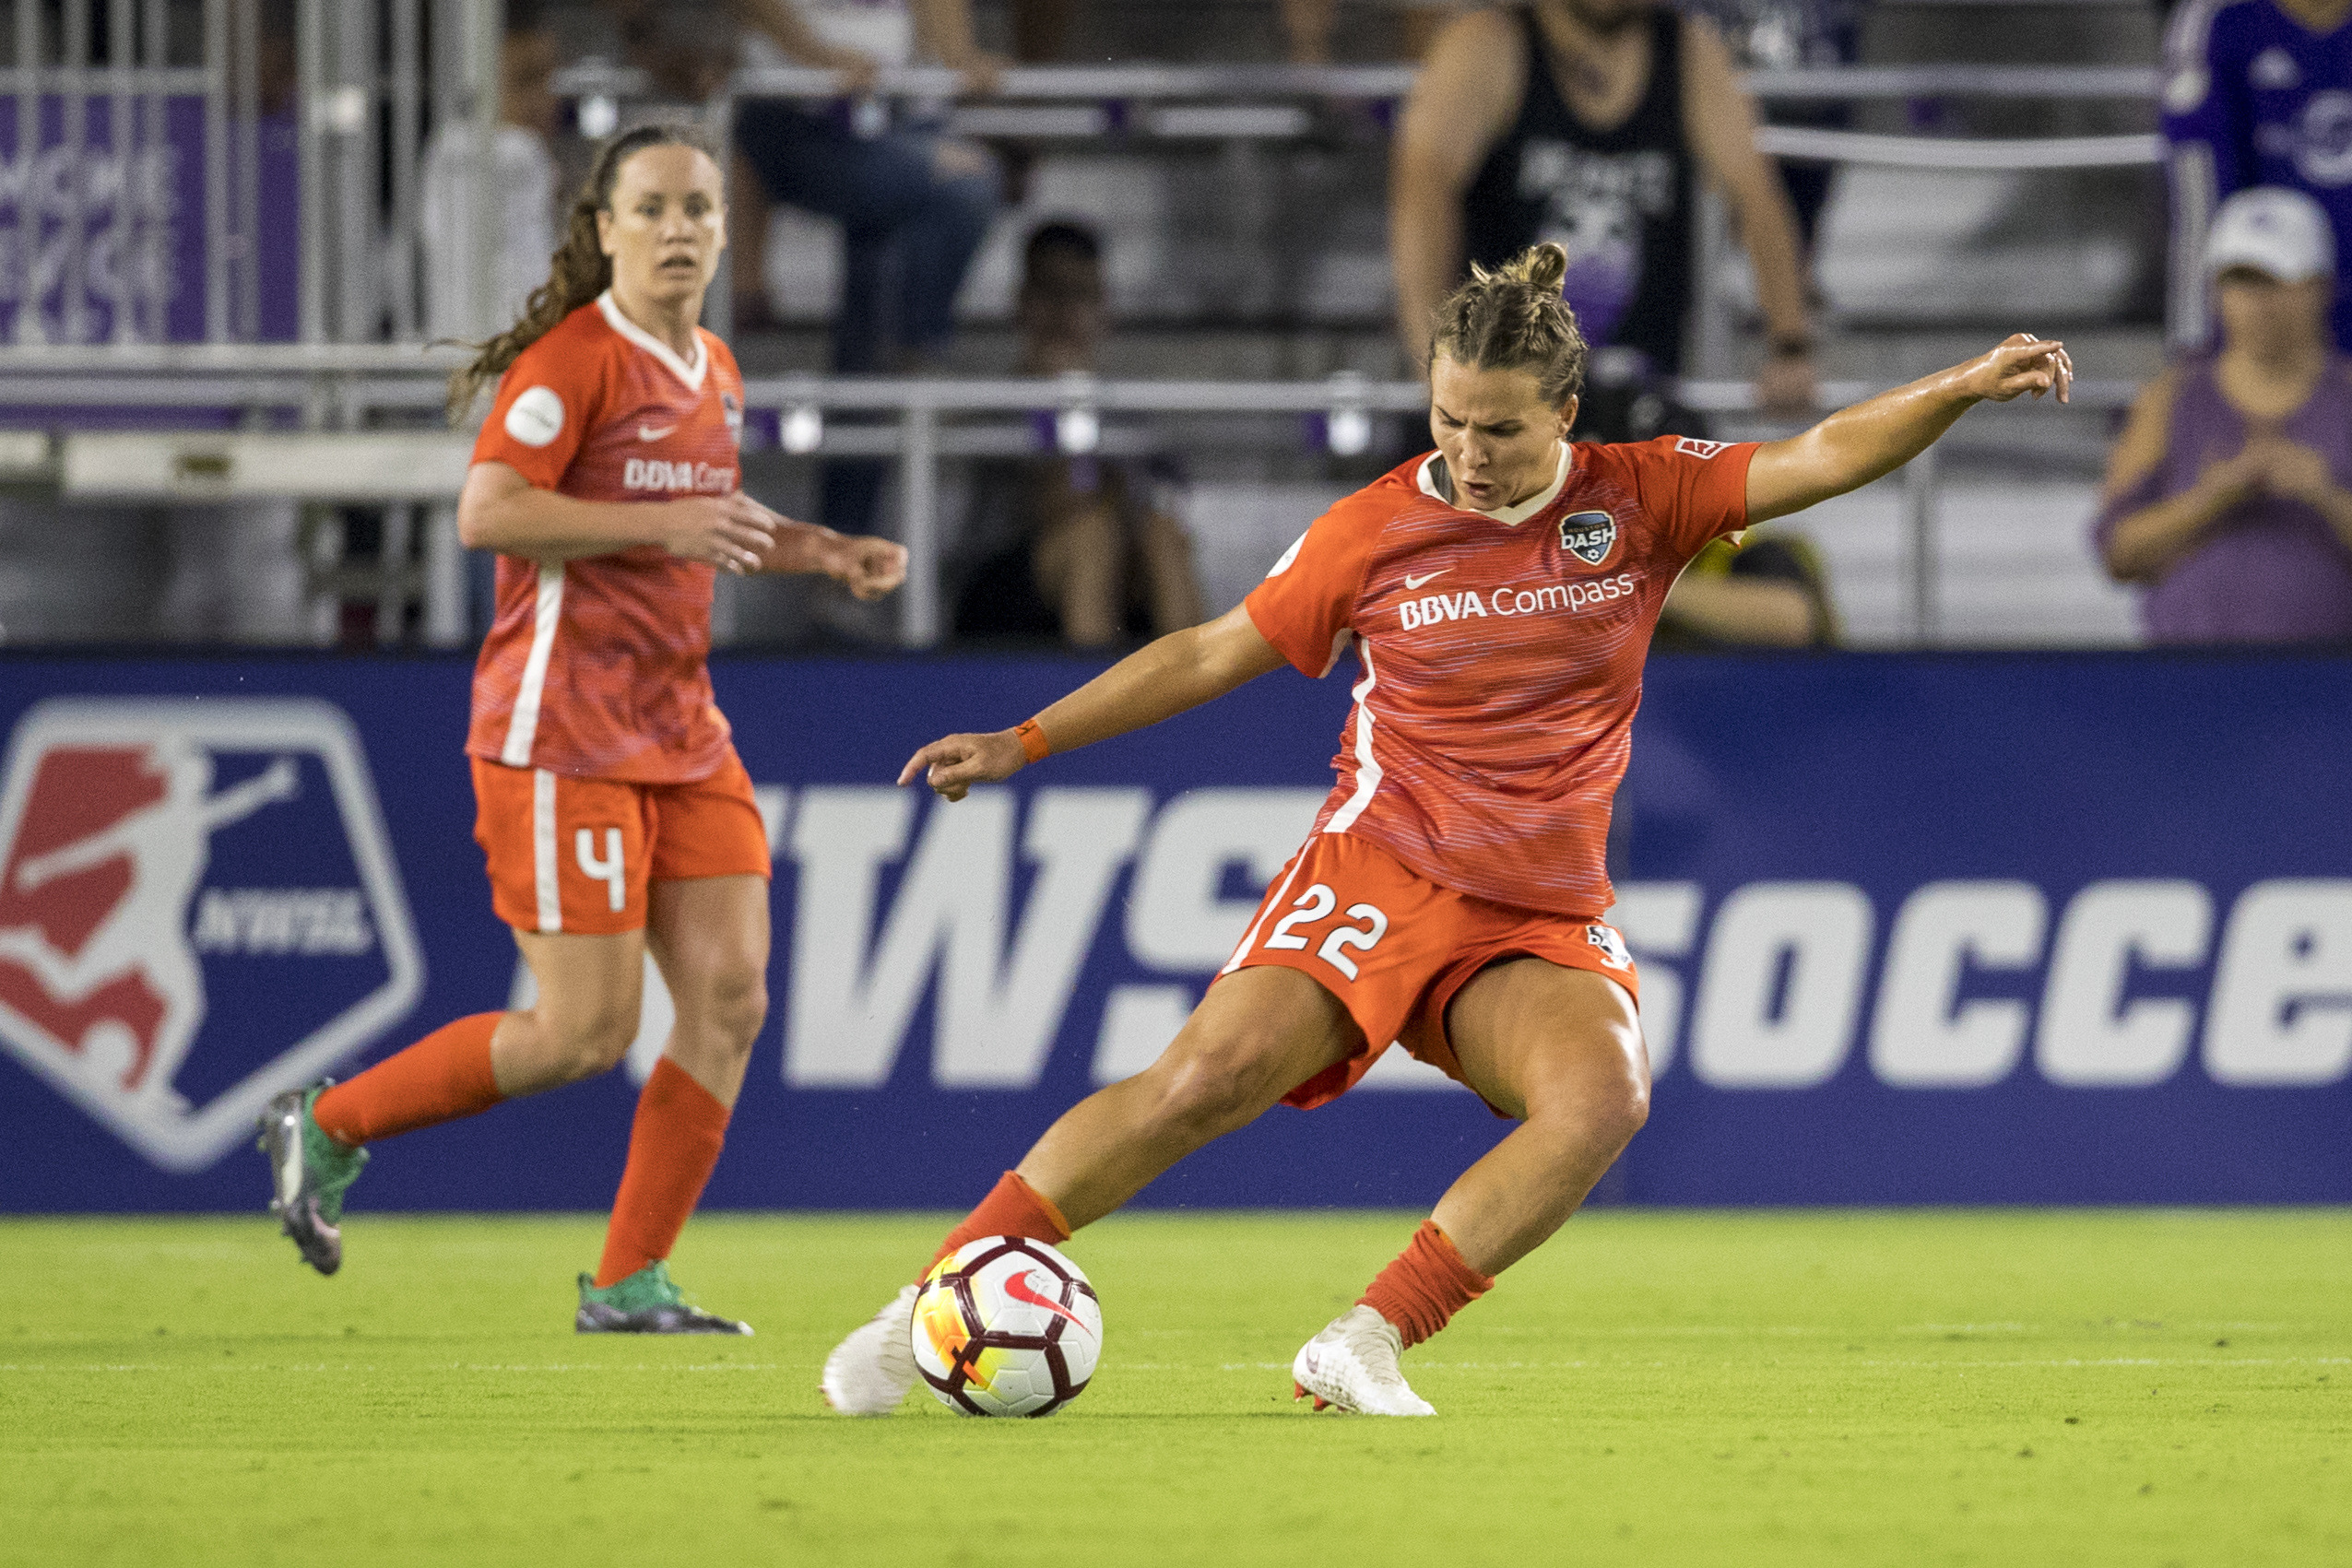 SOCCER: JUN 27 NWSL - Houston Dash at Orlando Pride